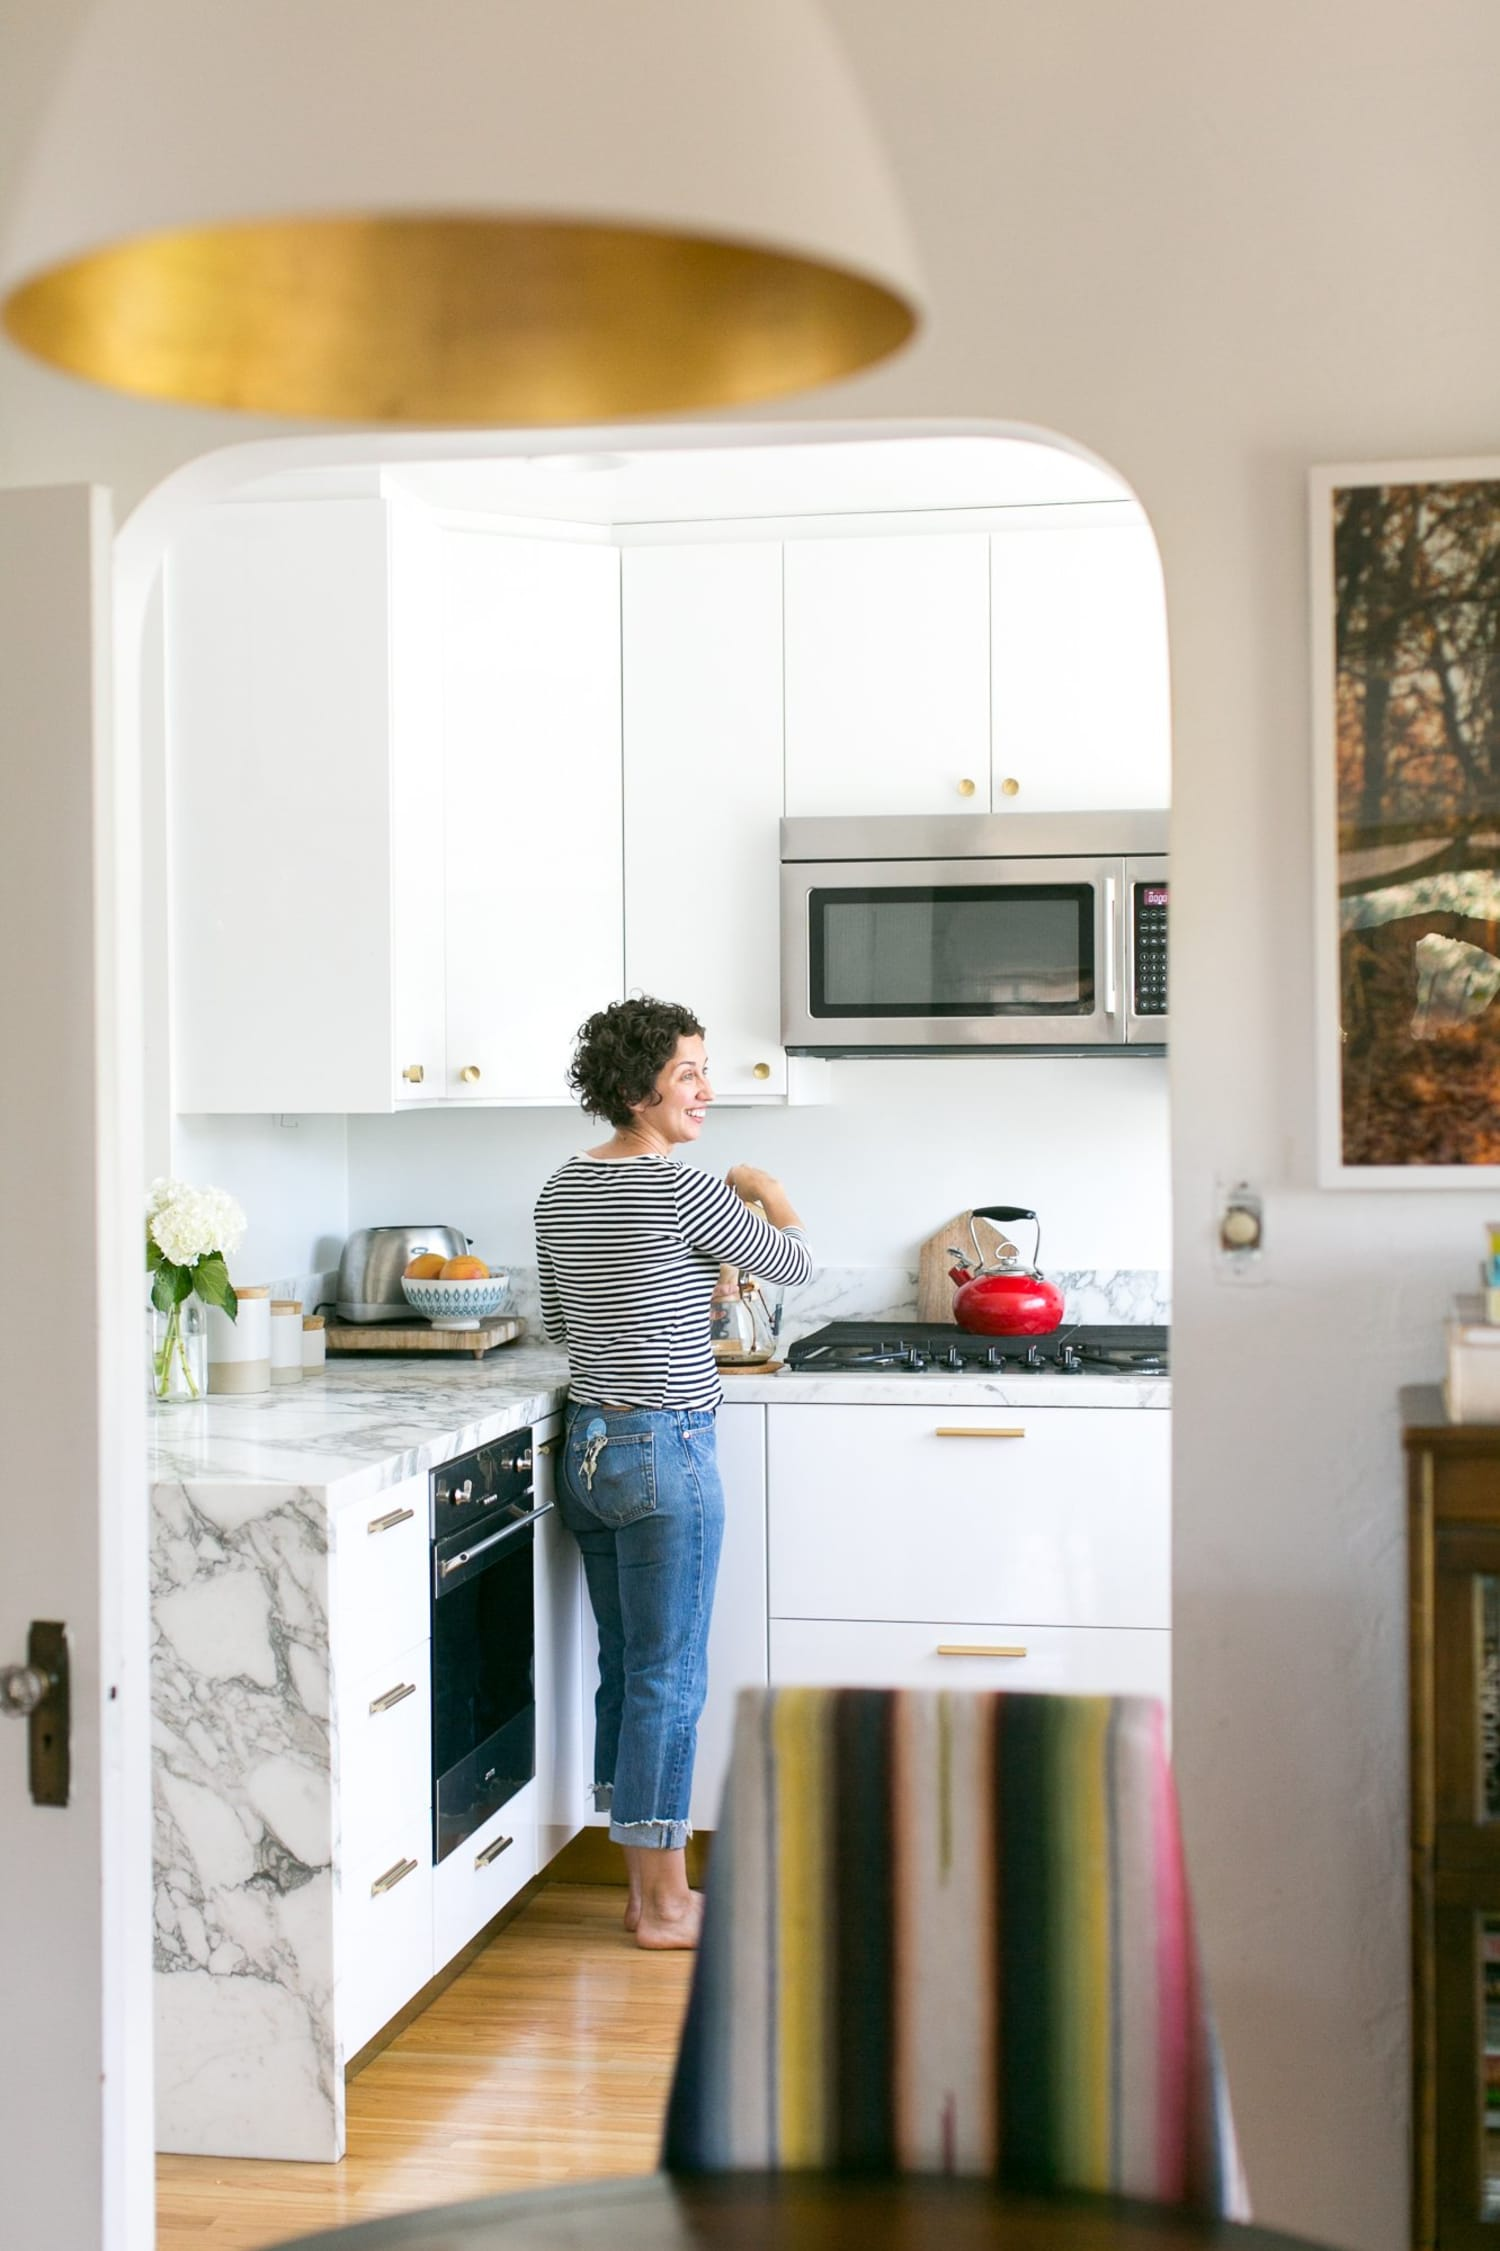 Ikea Kitchen Cabinets - Things to Know   Kitchn